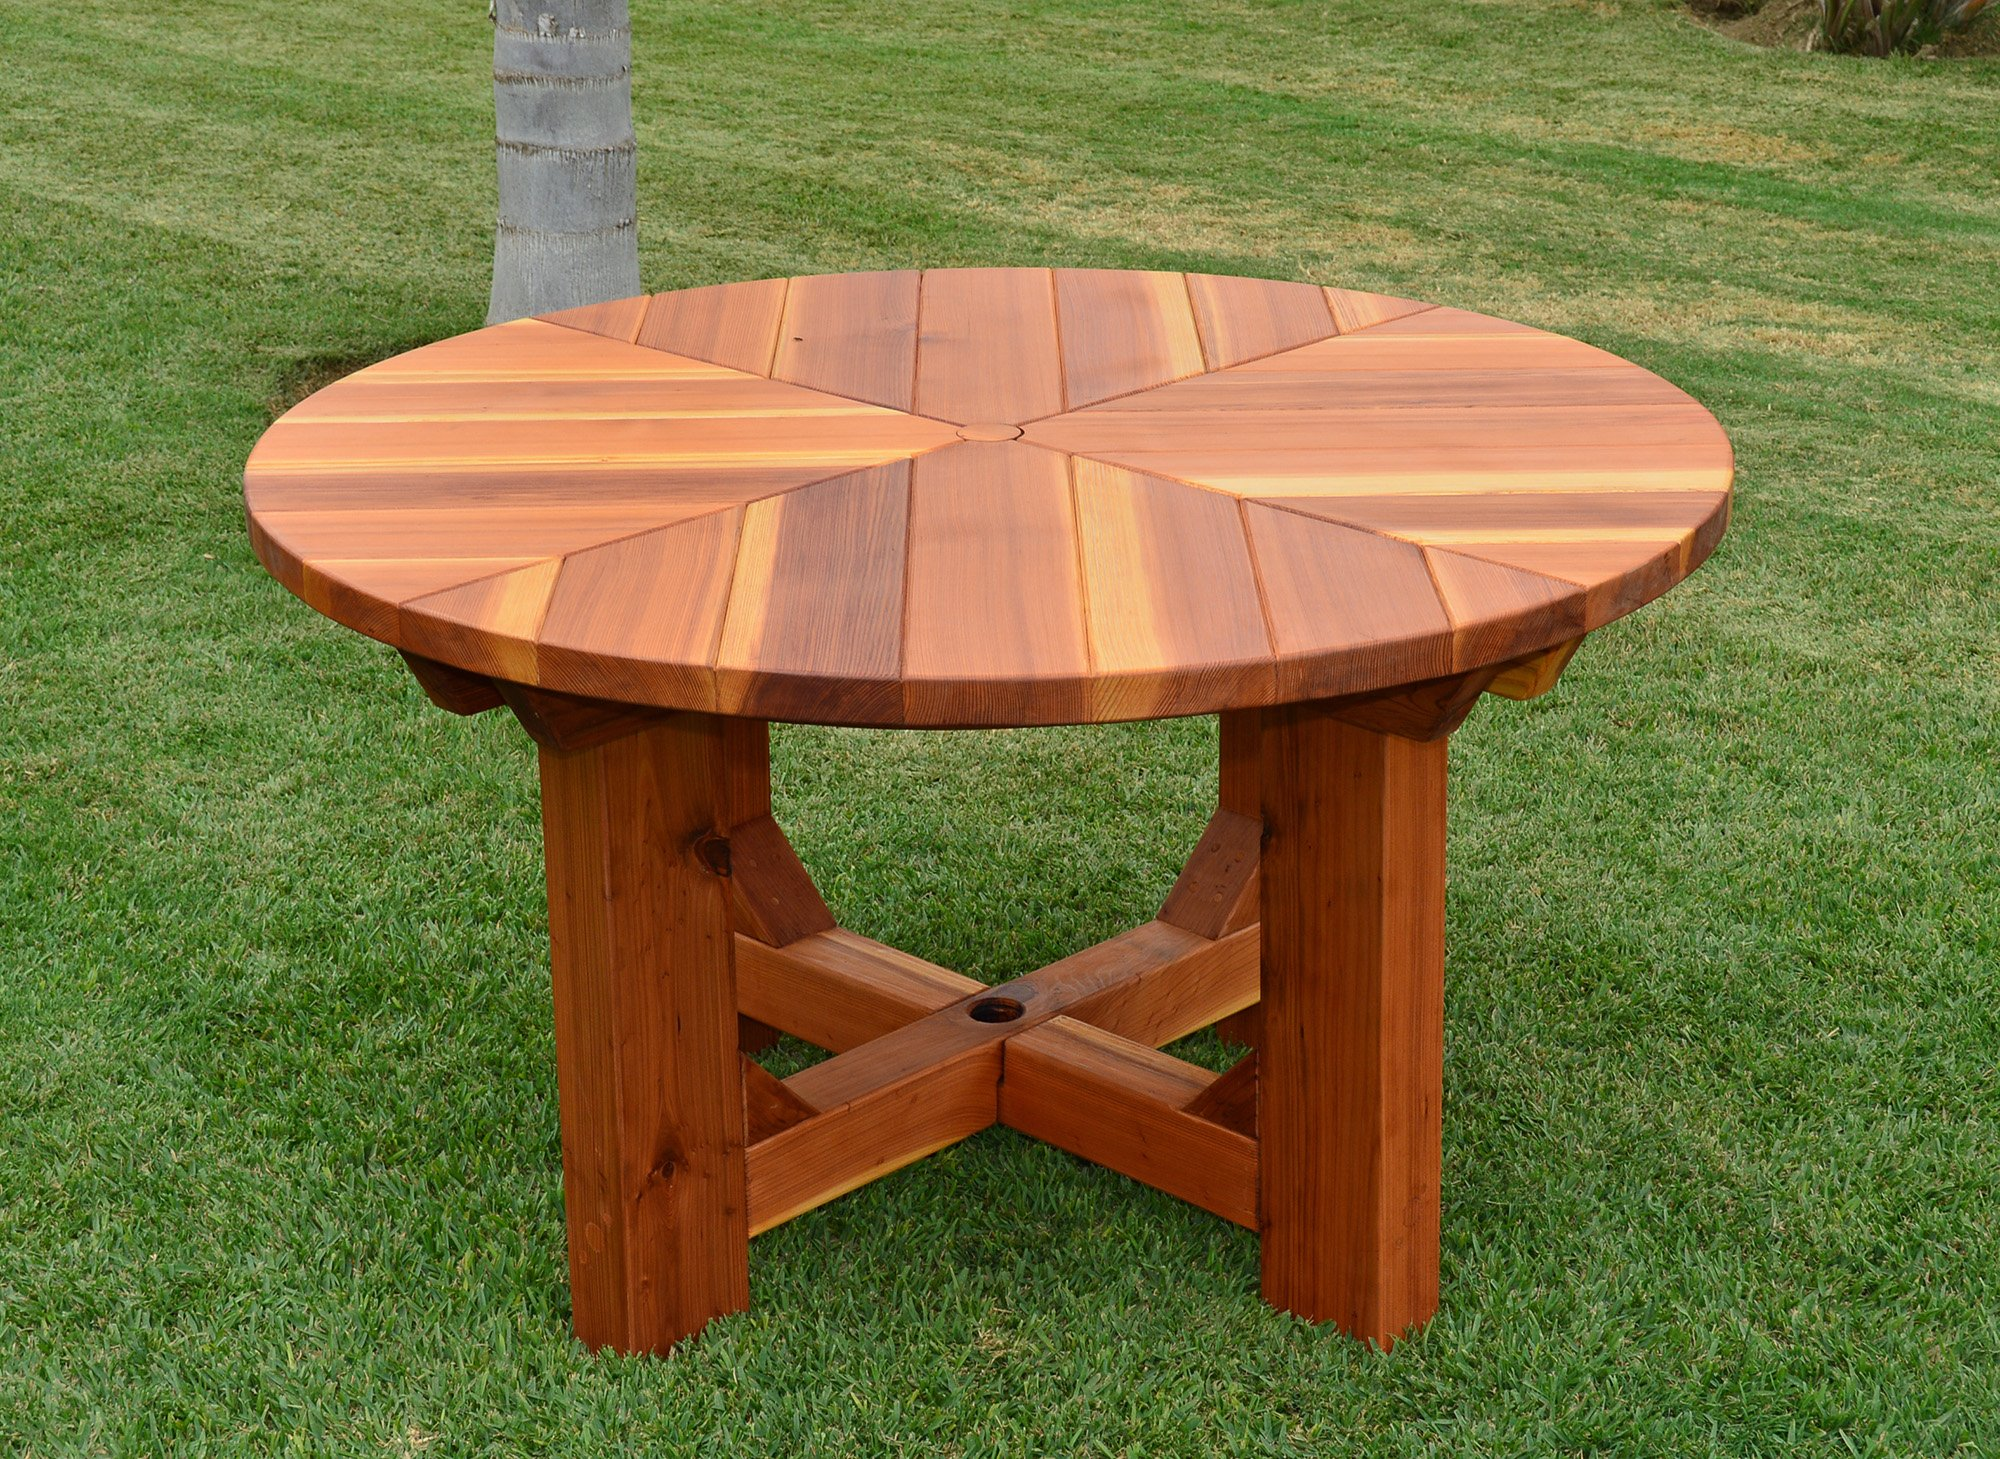 The Sunset Patio Table, Built to Last Decades | Forever Redwood on redwood home, redwood sofa, outdoor furniture cushion, outdoor furniture covers, wicker furniture outdoor, redwood paint, redwood jewelry, redwood flooring, indoor outdoor furniture, patio furniture, garden furniture, redwood furniture cushions, outdoor bar furniture, redwood furniture plans, redwood chinese furniture, resin outdoor furniture, outdoor dining furniture, redwood furniture store, wrought iron outdoor furniture, redwood outdoor art, outdoor furniture sets, redwood doors, redwood tables, redwood outdoor bench, homemade redwood furniture, teak outdoor furniture, amish outdoor furniture, outdoor wood furniture, redwood indoor furniture, modern outdoor furniture, redwood outdoor playsets, contemporary outdoor furniture, outdoor patio furniture, redwood flowers, redwood bedroom furniture, outdoor furniture plans, outdoor pool furniture, redwood chairs, redwood public furniture,